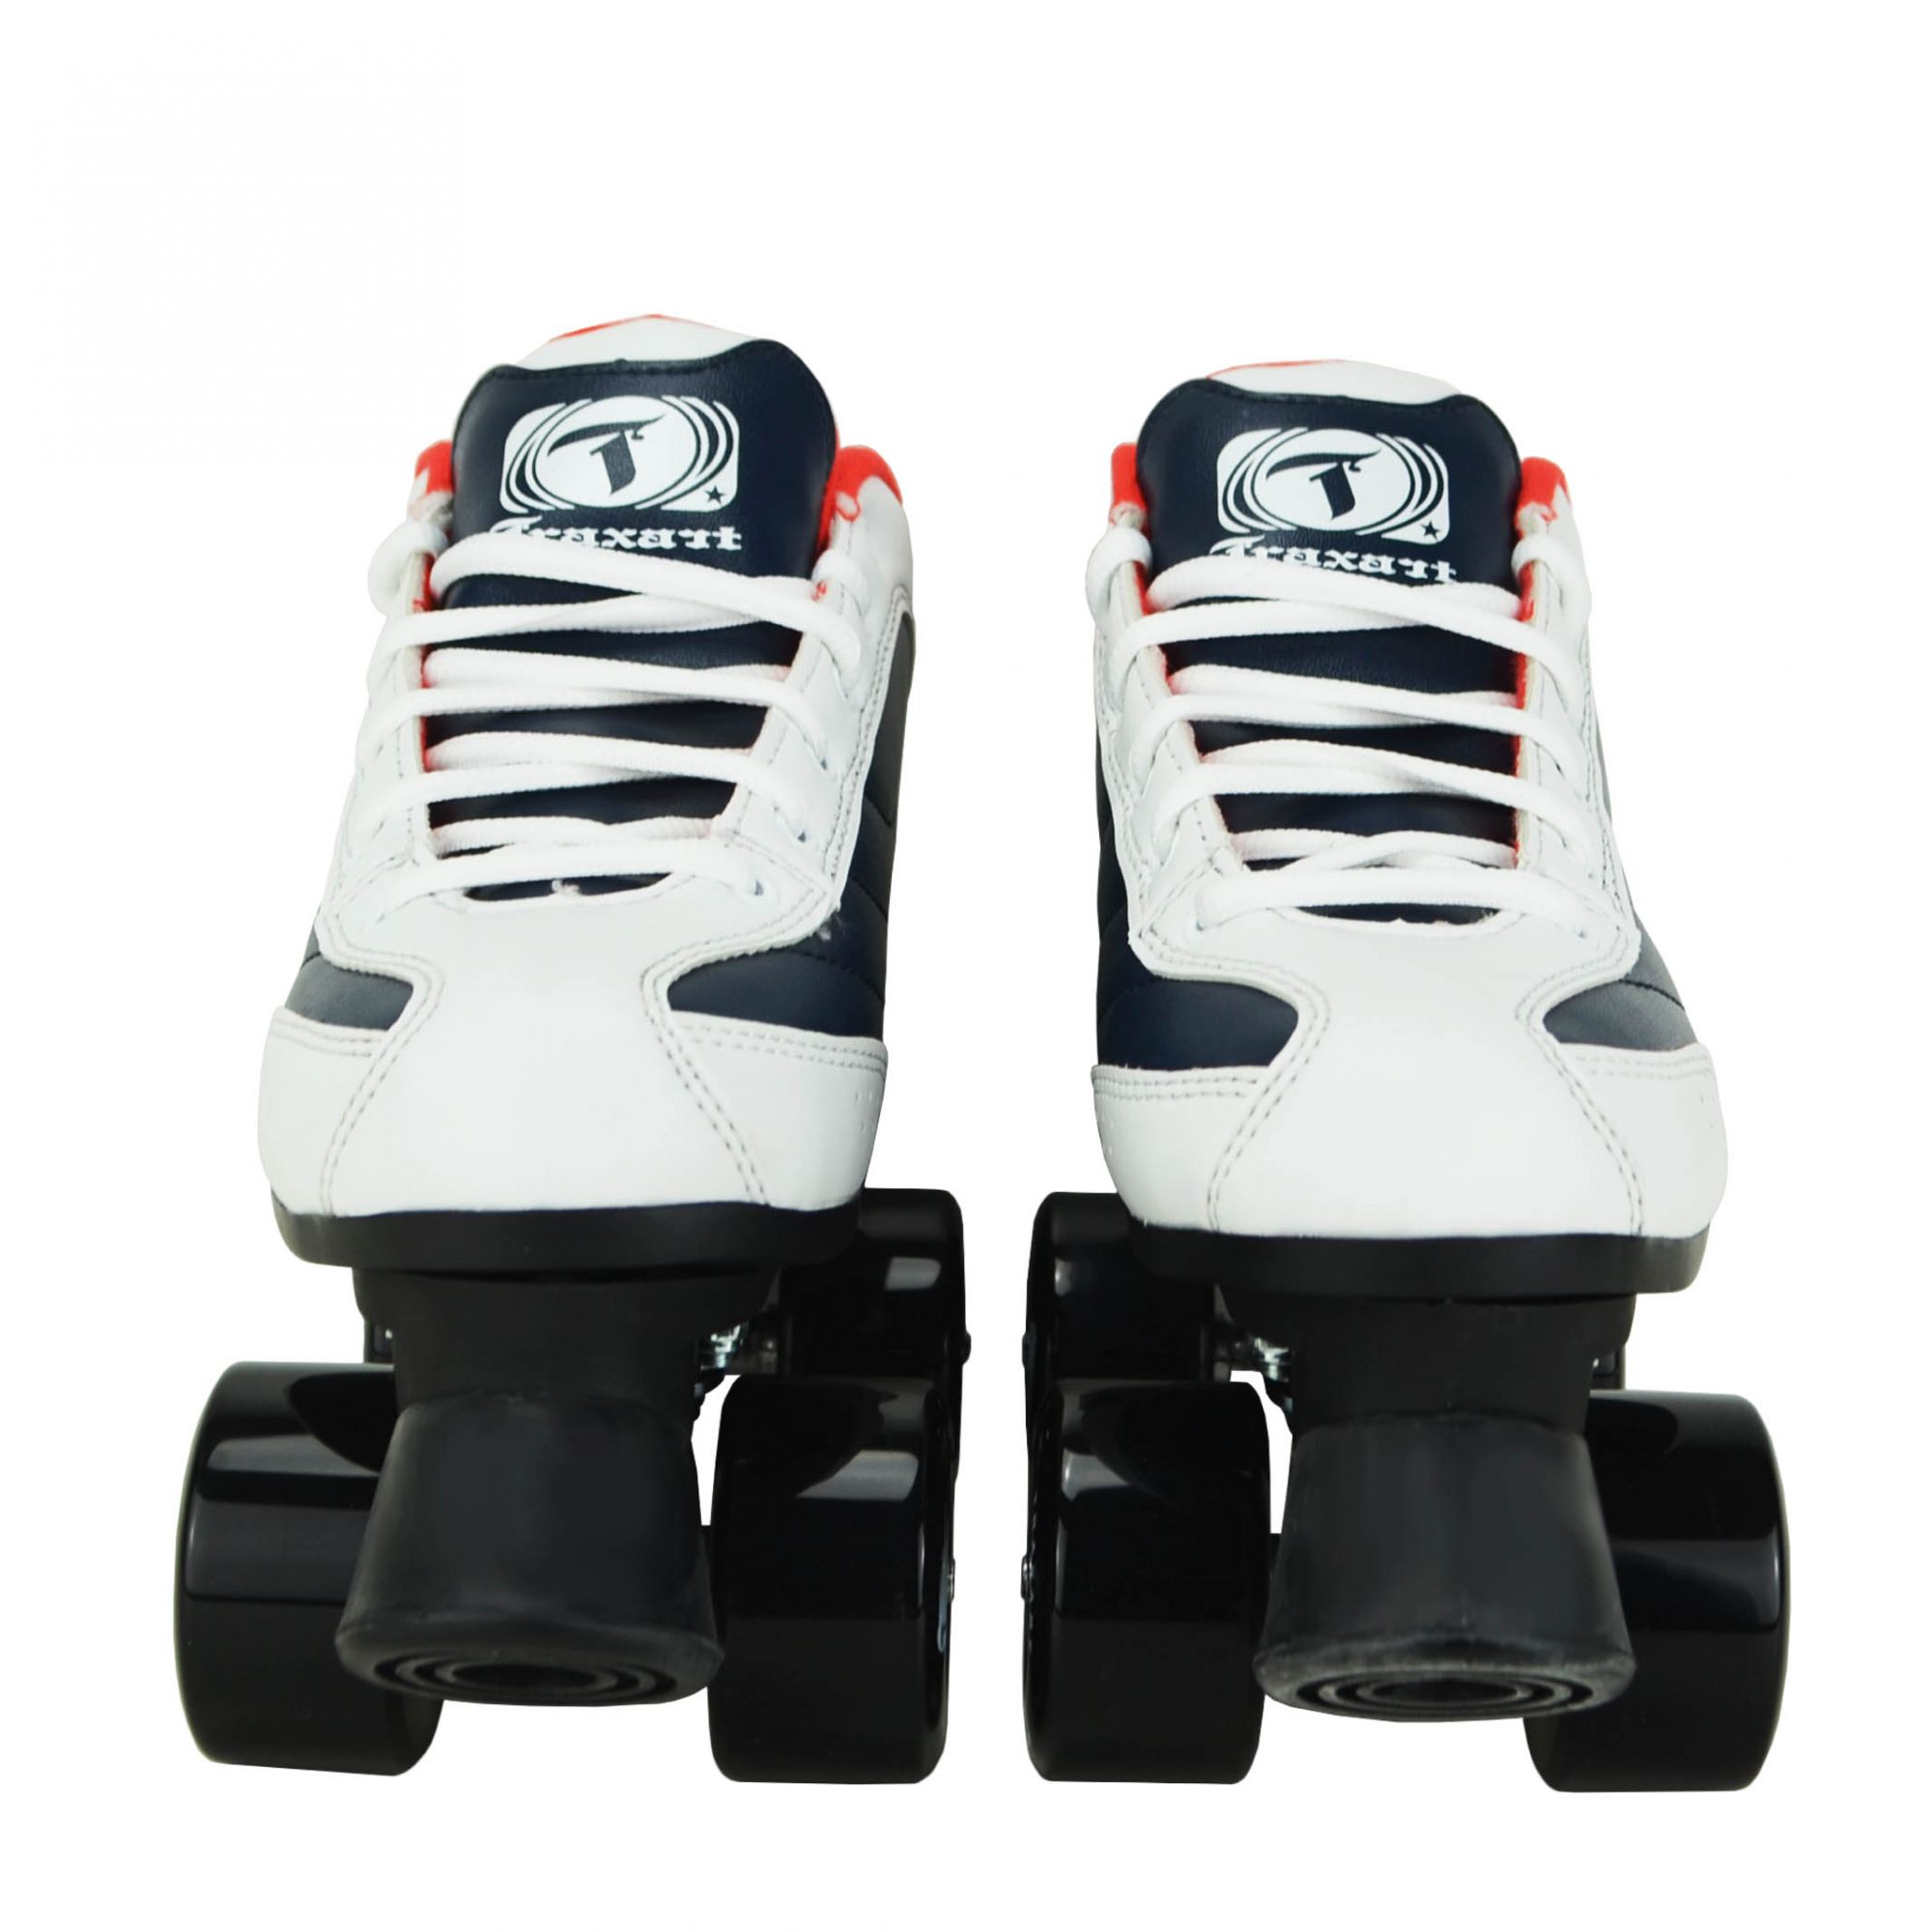 Patins Traxart Quad Space TXT - Rodas 58x32mm/85A ABEC-5